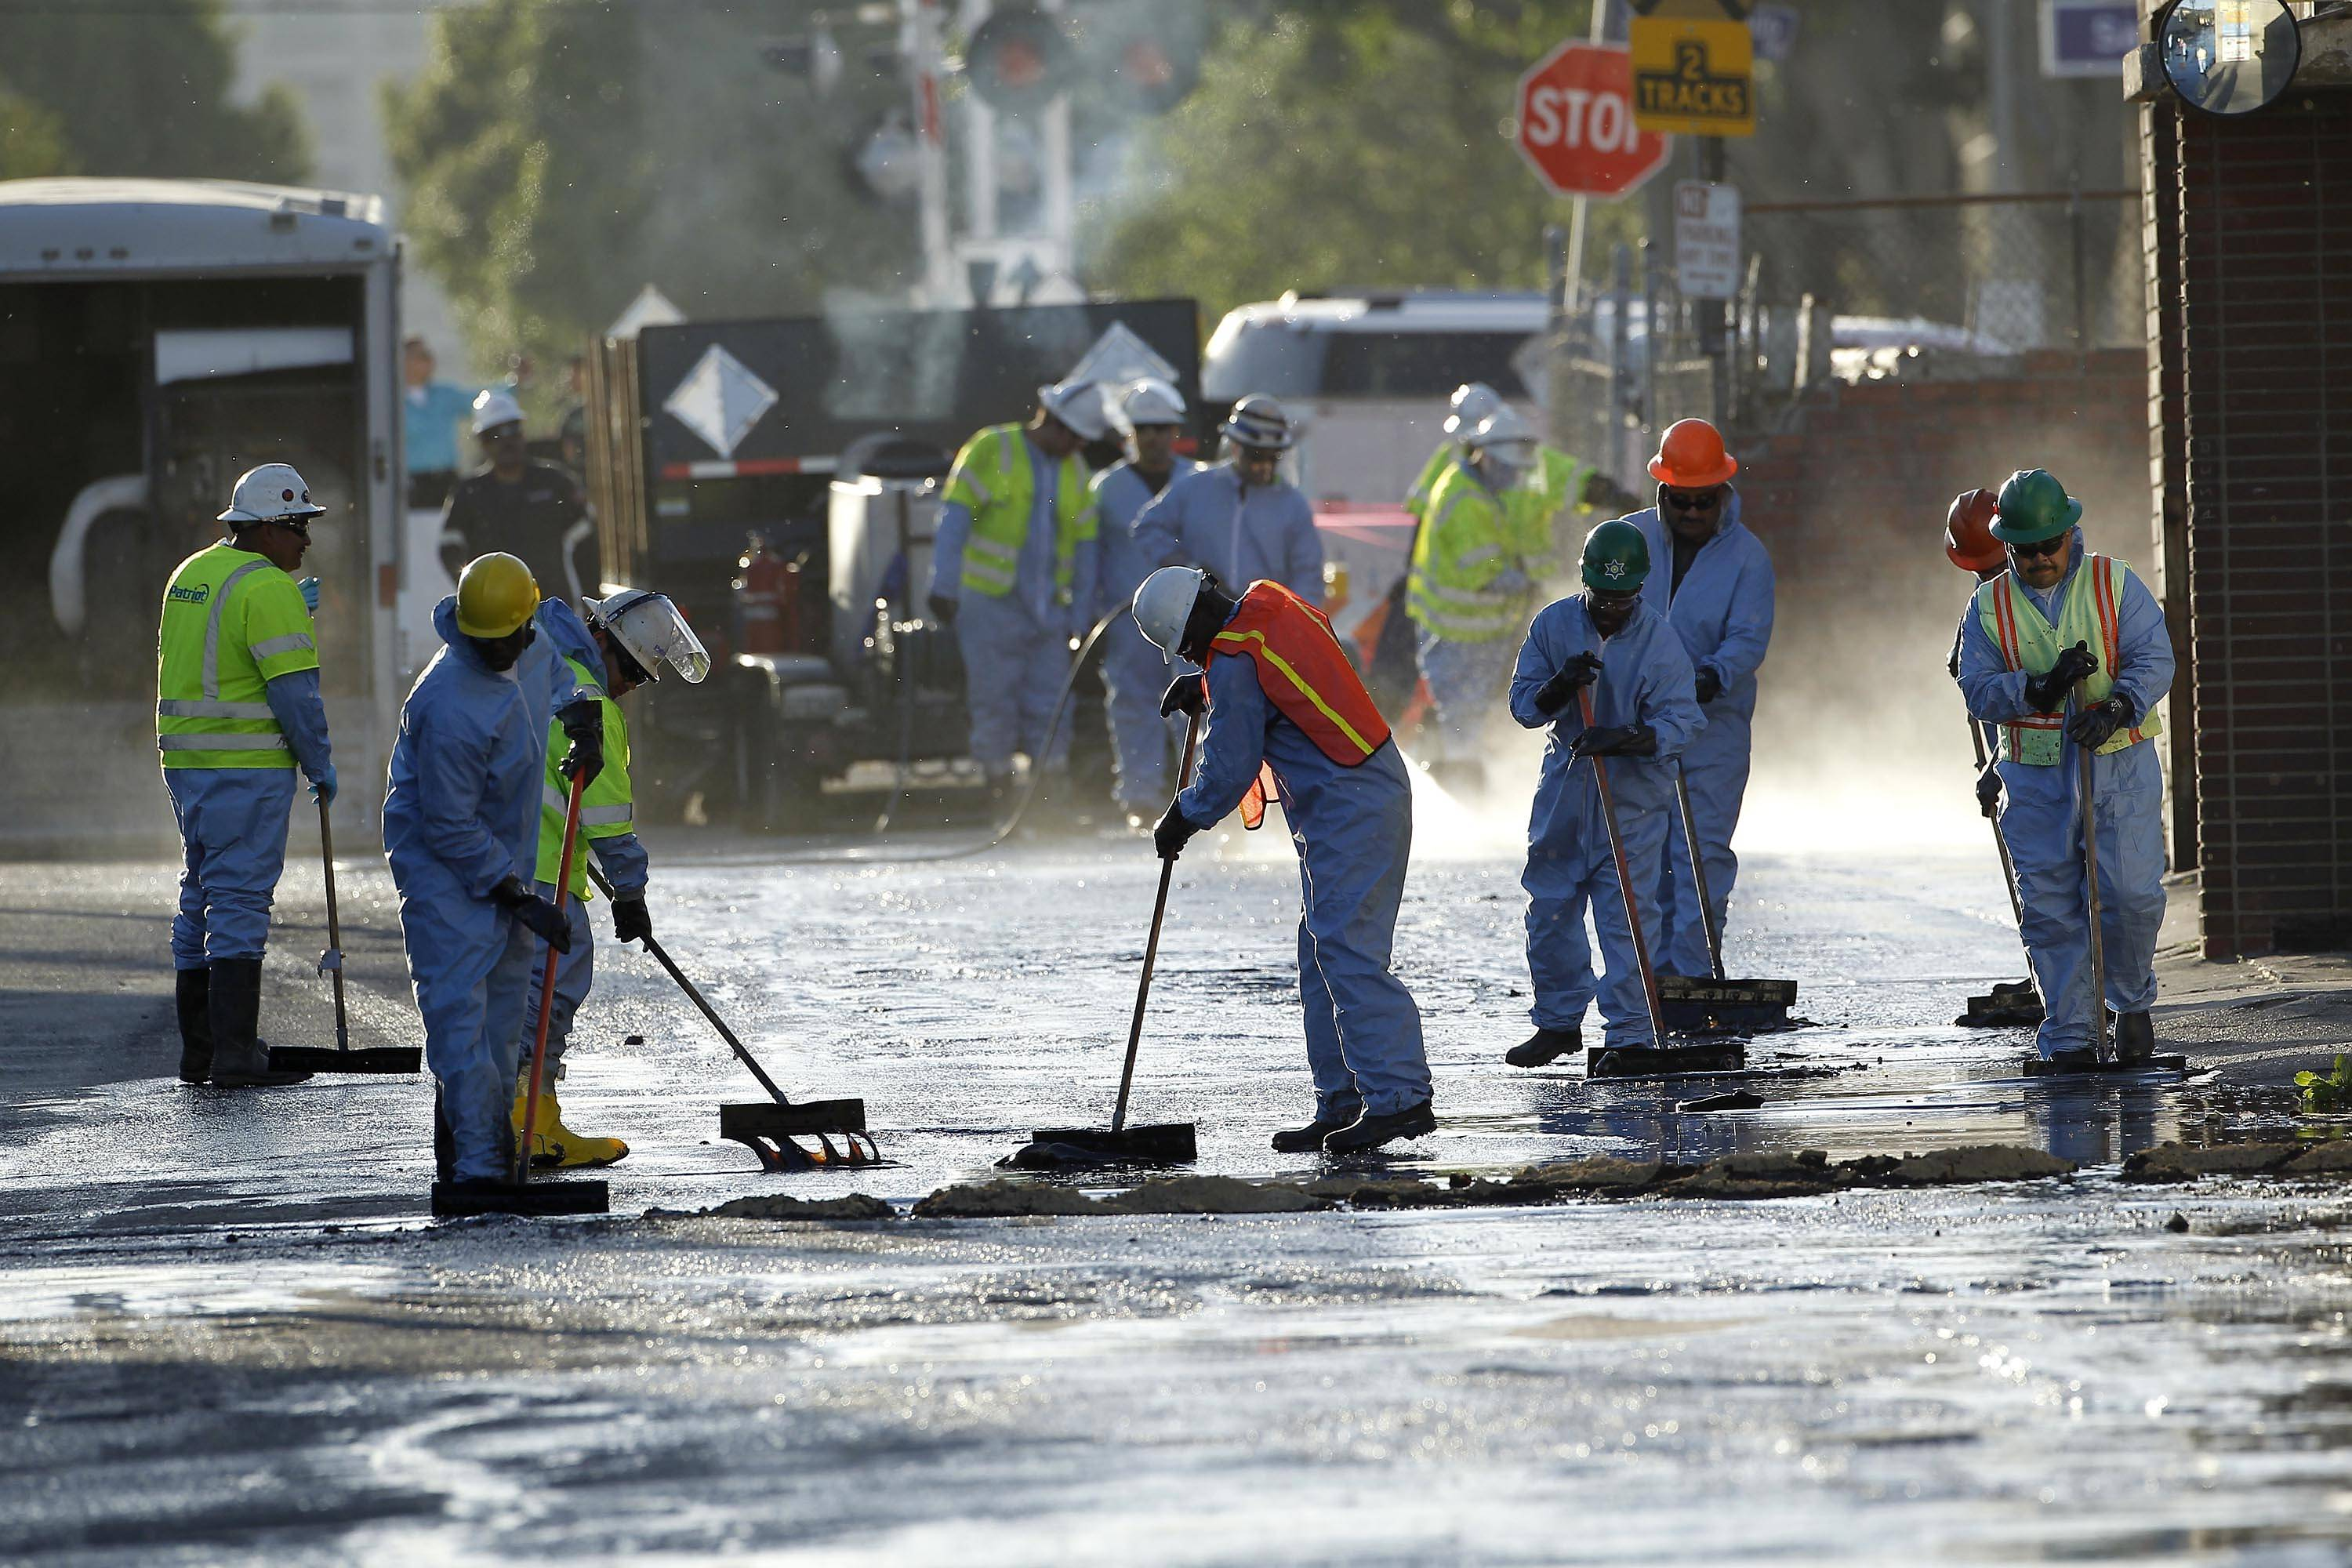 Crews sop up the remains of about 10,000 gallons of crude oil in Los Angeles on Thursday, May 15, 2014. A geyser of crude spewed 20 feet high over approximately half mile into Los Angeles streets and onto buildings early Thursday after a high-pressure pipe burst.